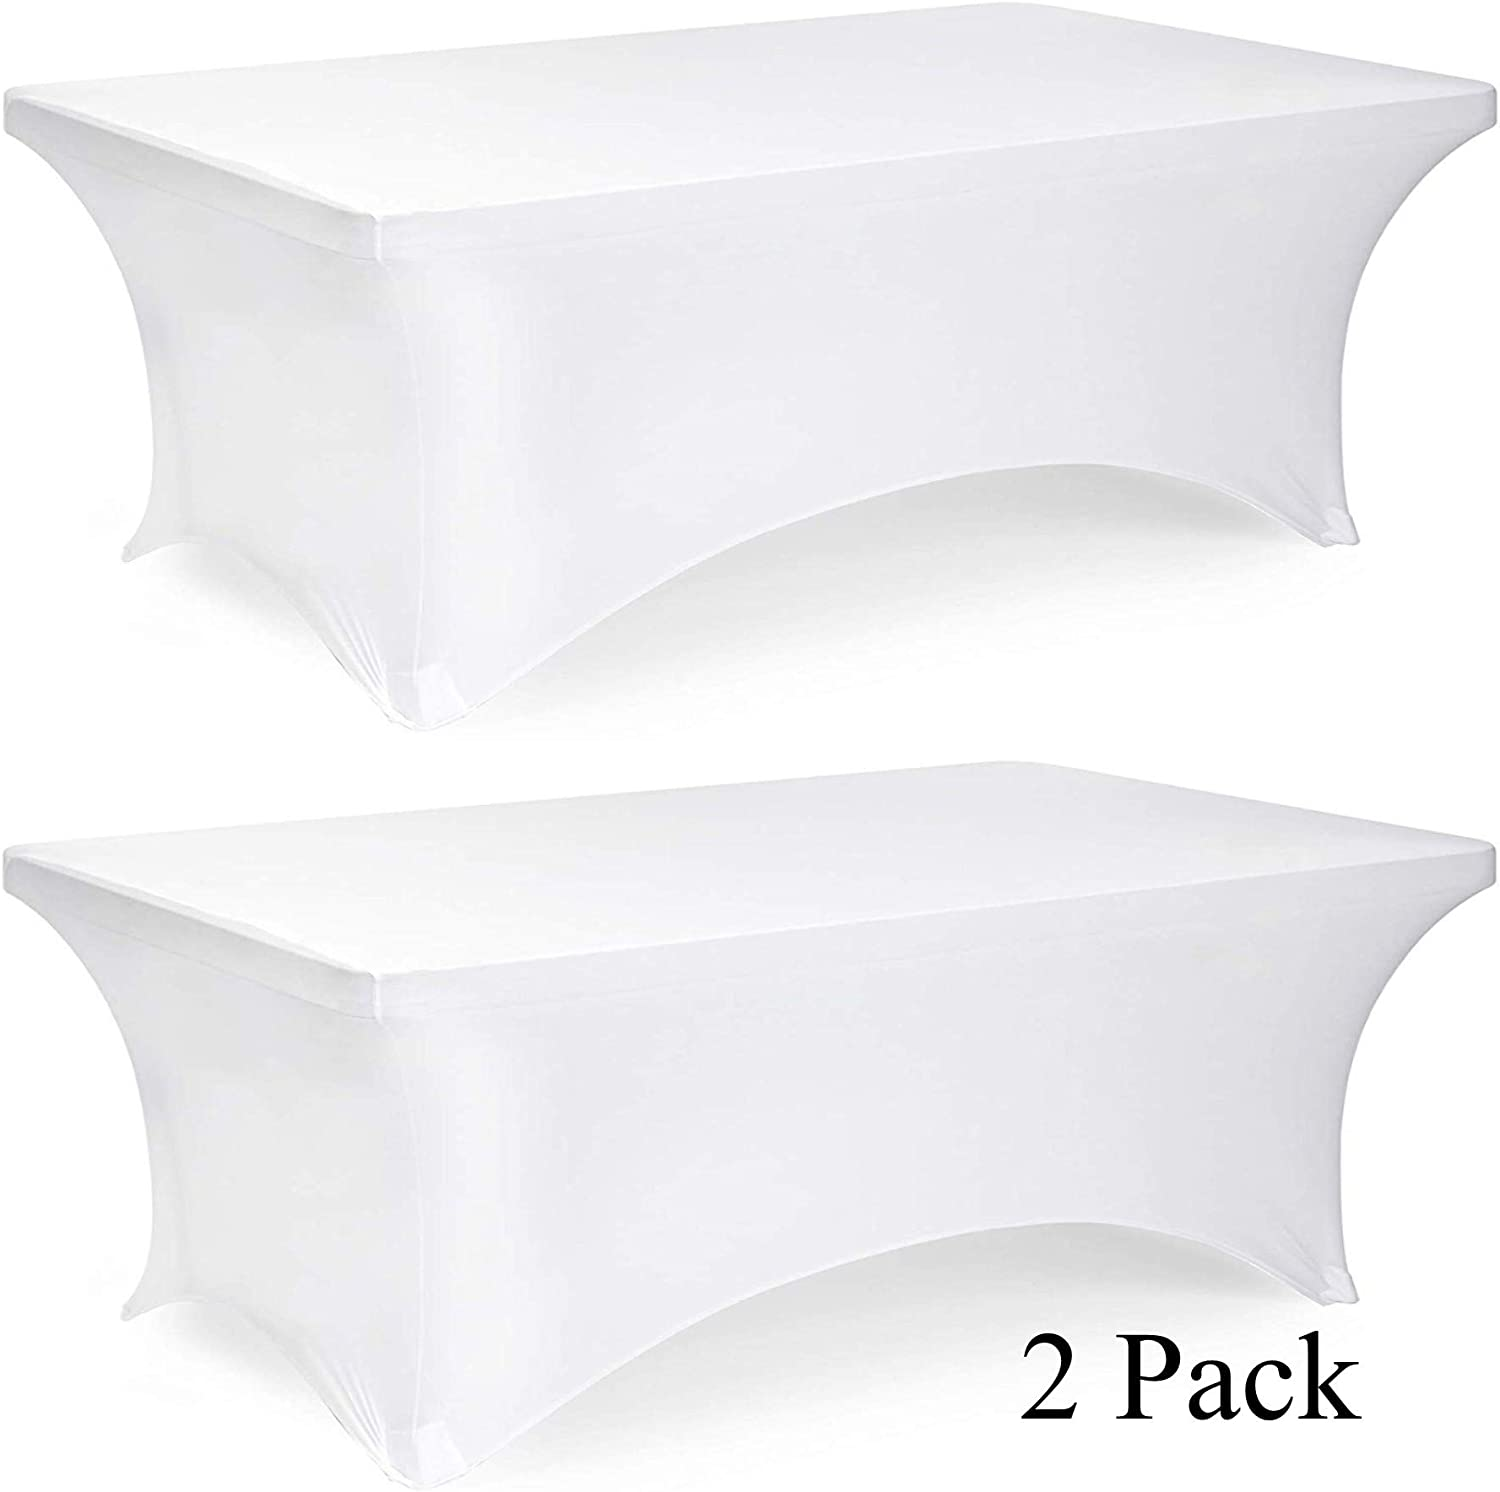 6ft Rectangle Stretch Tablecloth - Tight Fitted Spandex Rectangular Table Cover for 6 Feet Folding Table (White, 2 Pack)